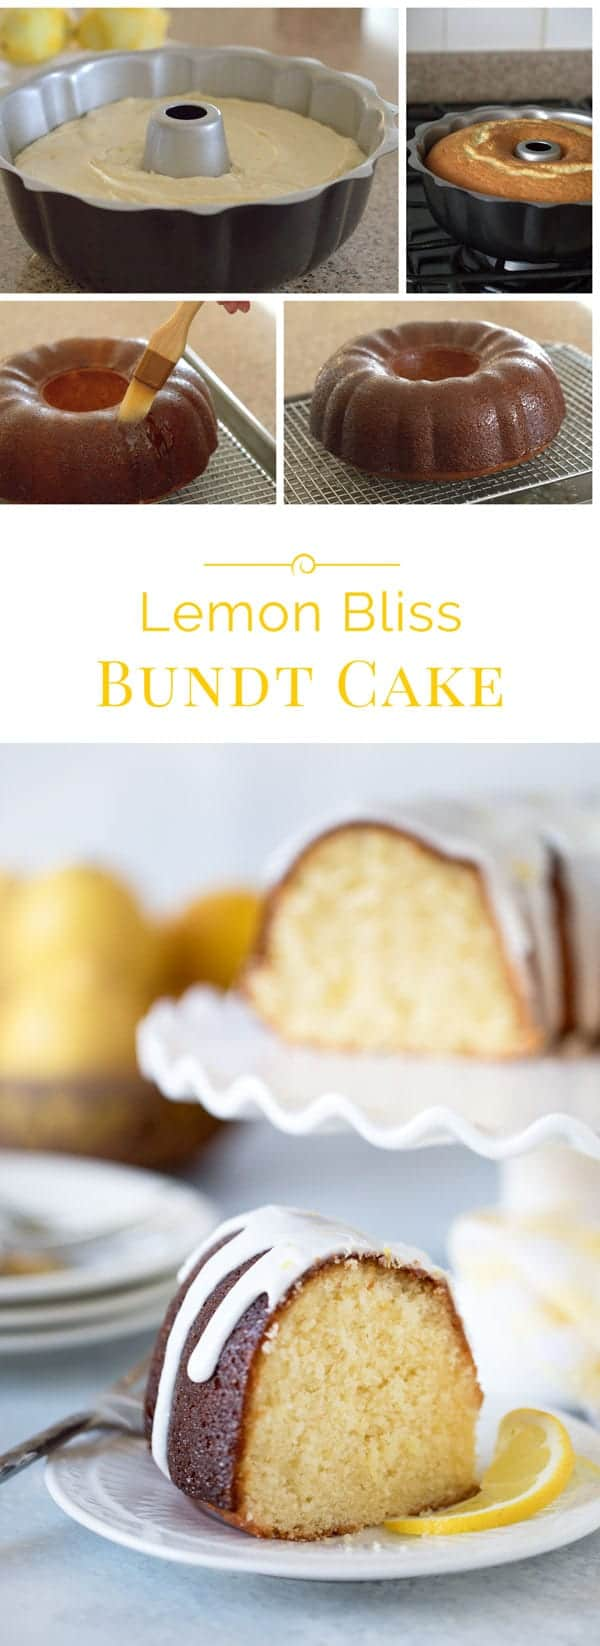 Lemon-Bliss-Cake-collage